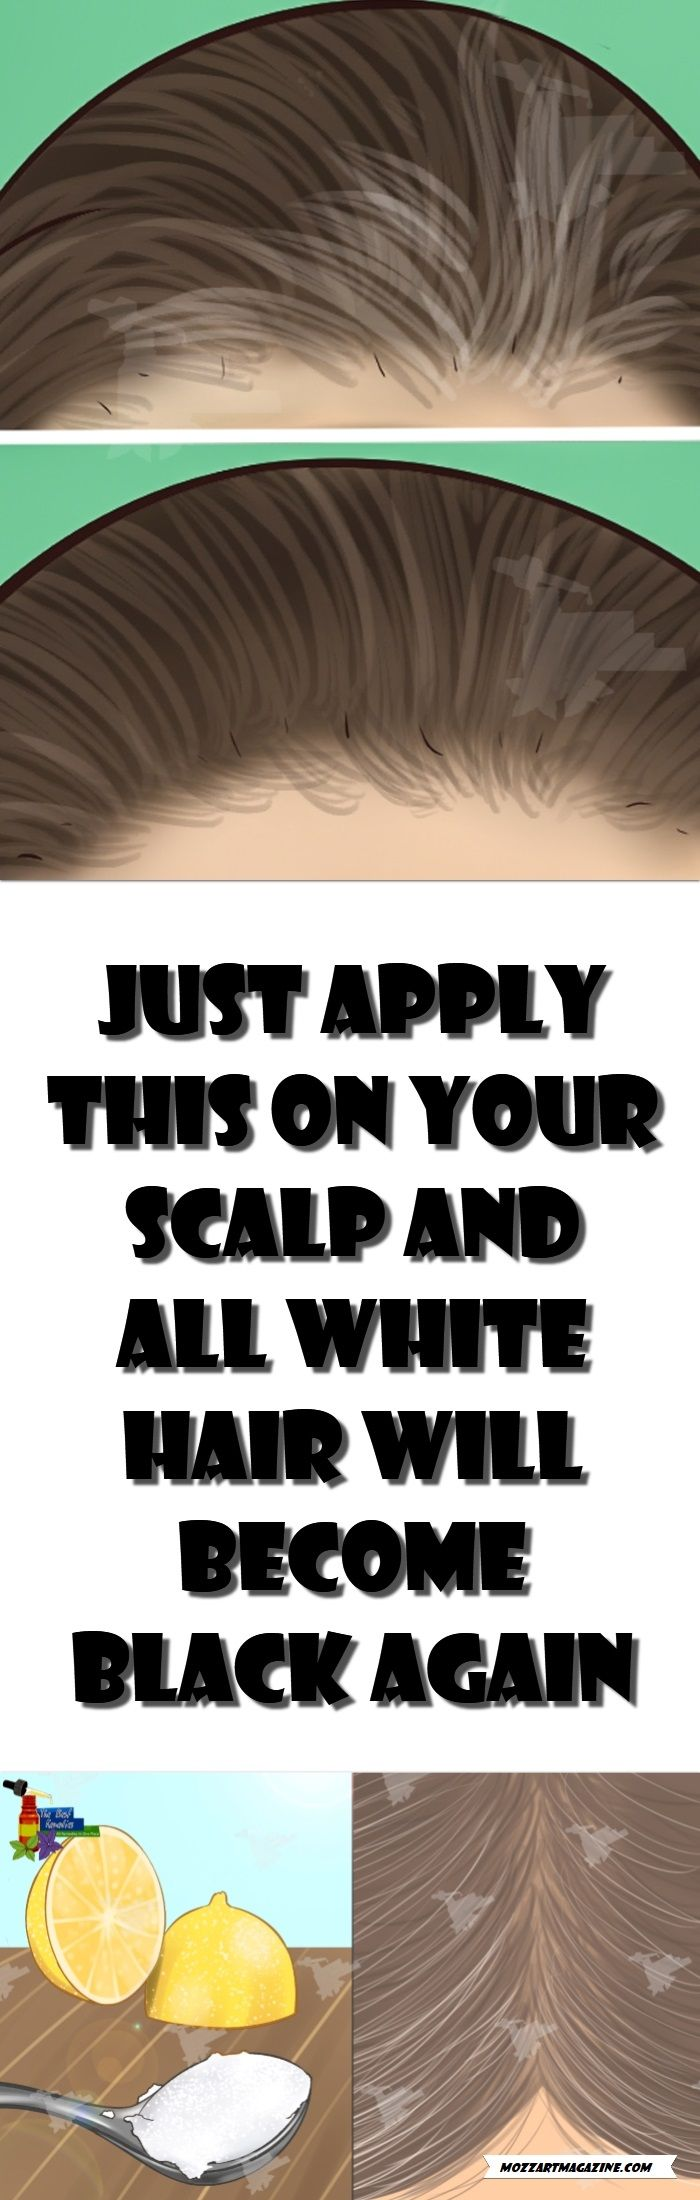 JUST APPLY THIS ON YOUR SCALP AND ALL WHITE HAIR WILL BECOME BLACK AGAIN